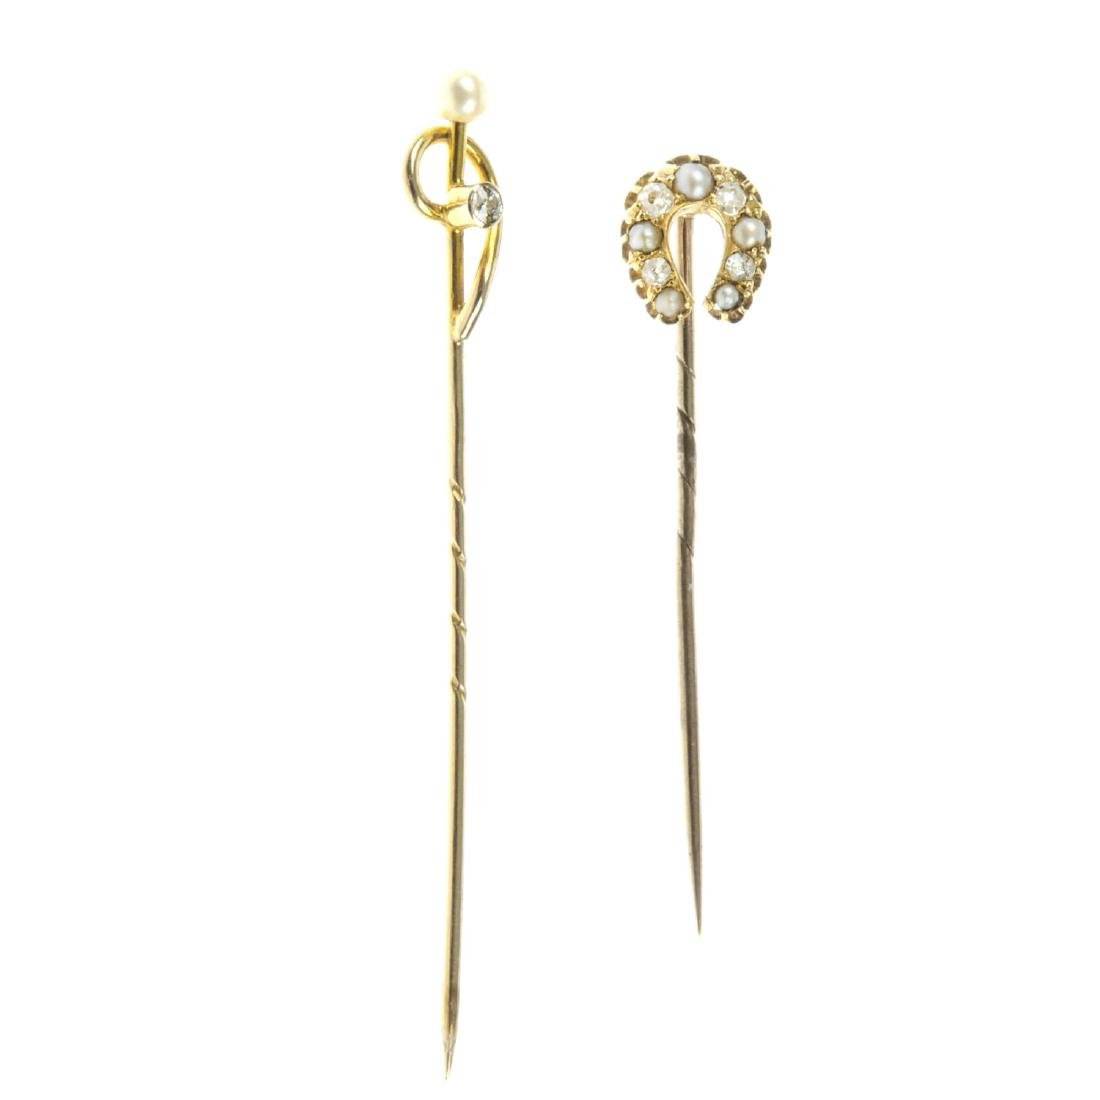 Two late Victorian gem-set stickpins. The first a